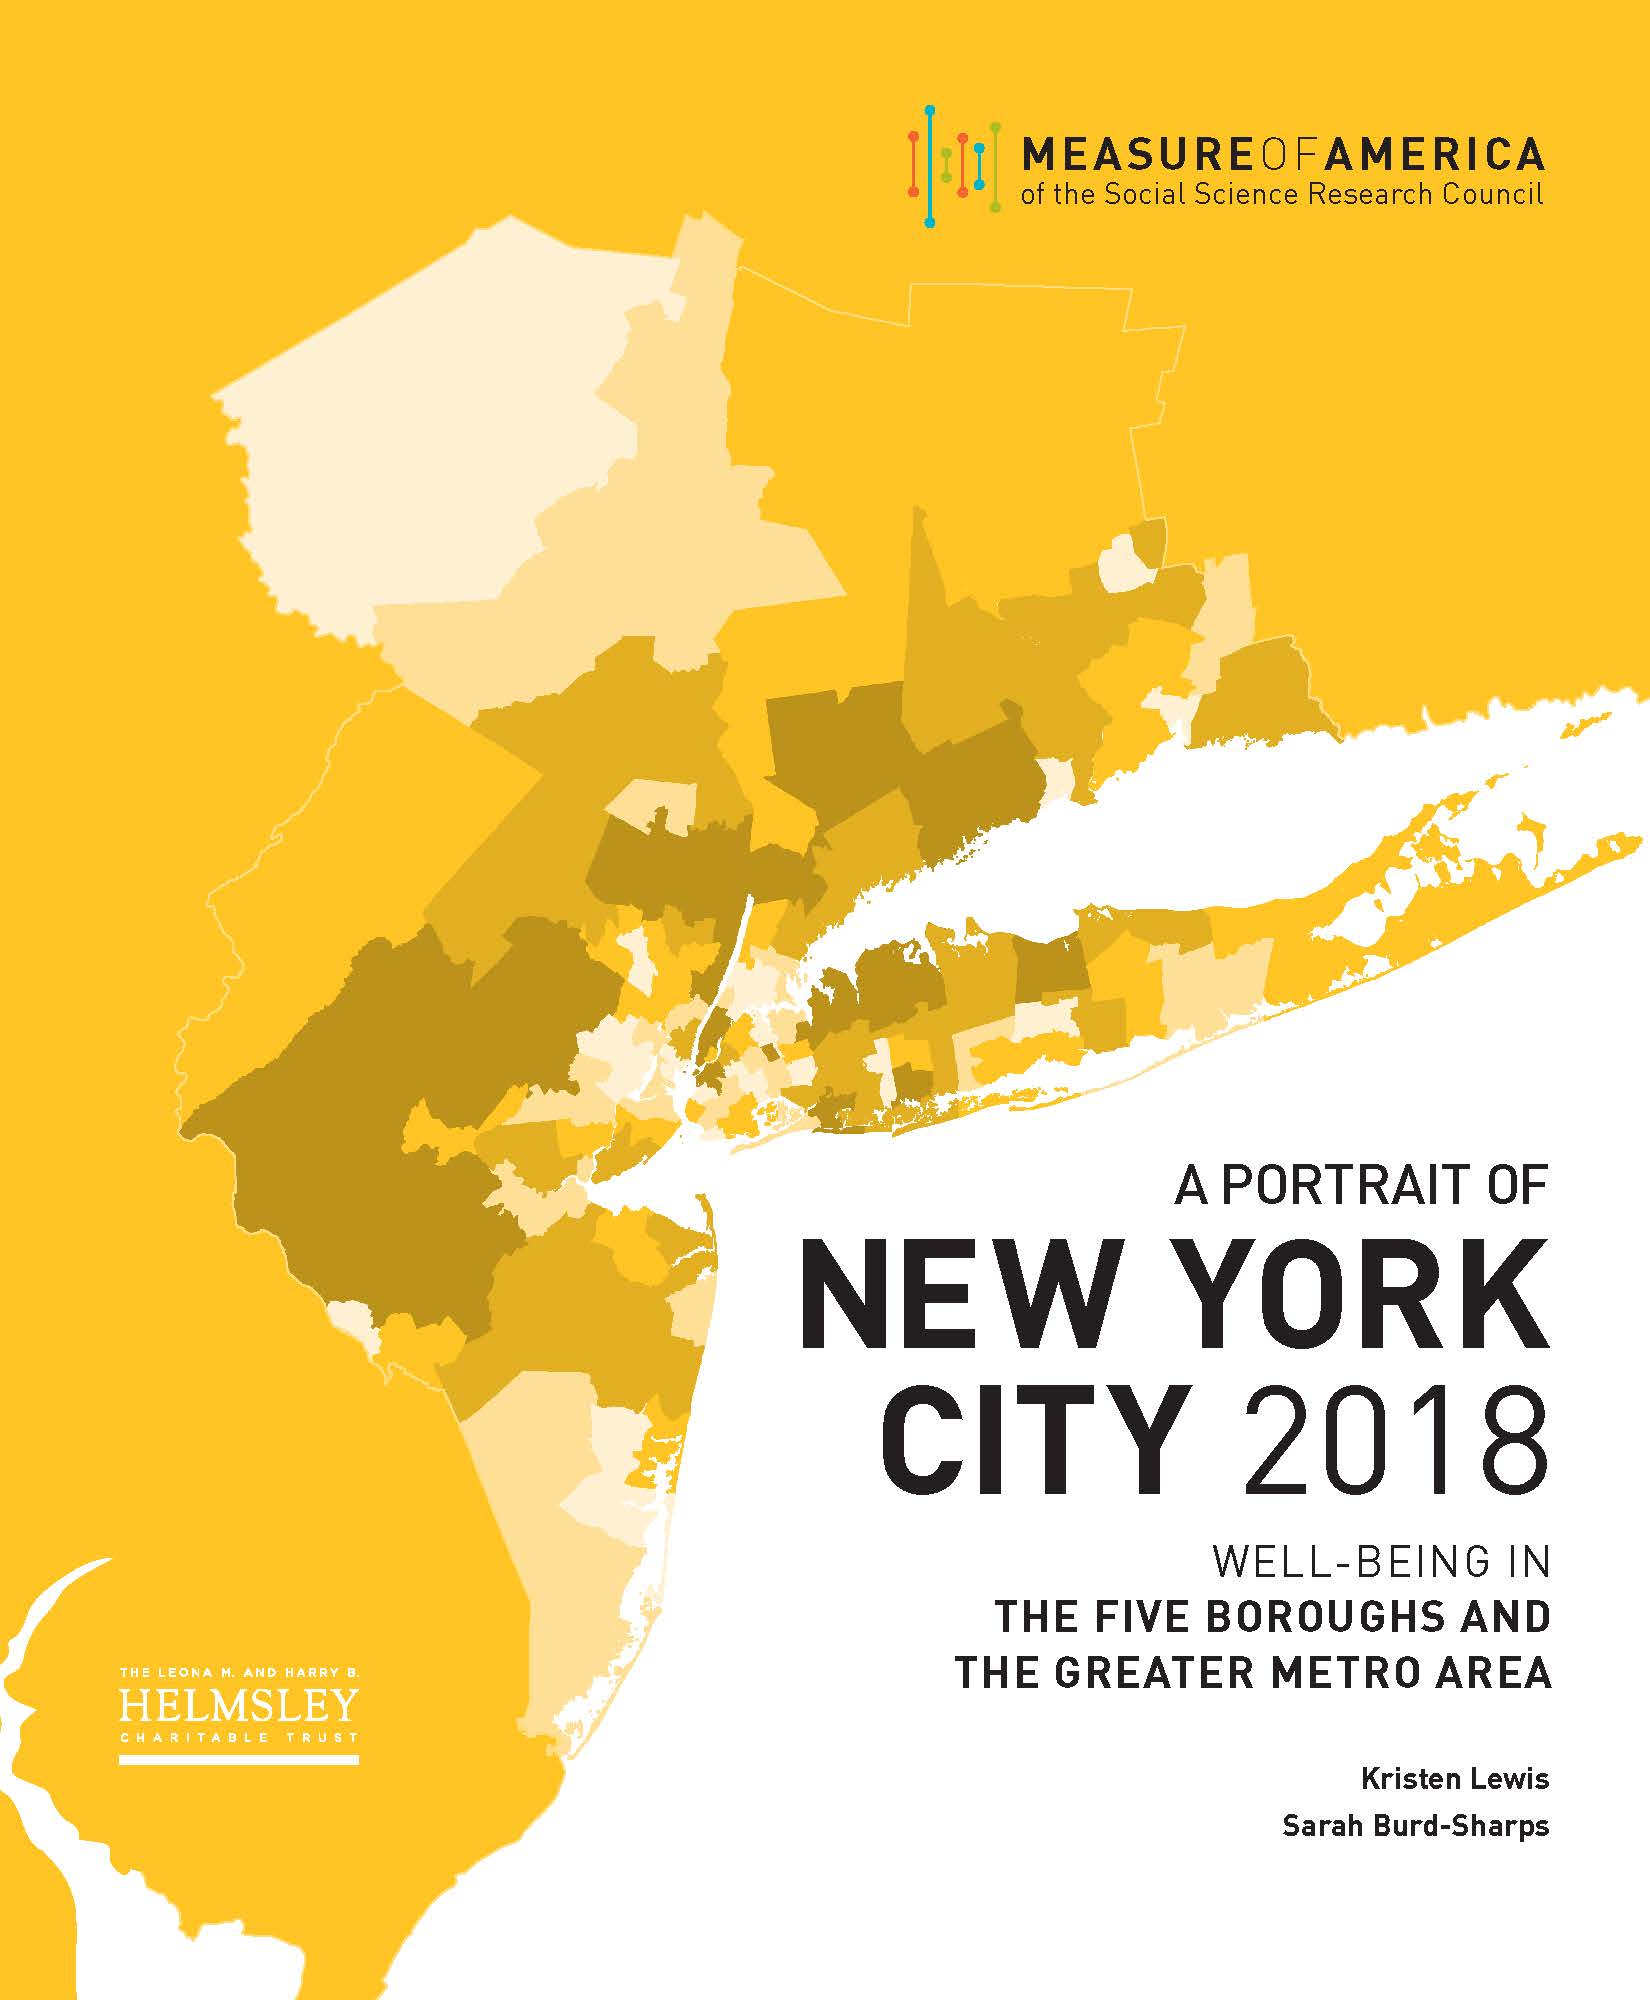 A Portrait of New York City 2018 — Measure of America: A ... on census 2010 demographic profiles, china ethnic maps, census map charlotte, census 2012 data ethnic groups, united states ethnic group maps, ethnicities us maps,